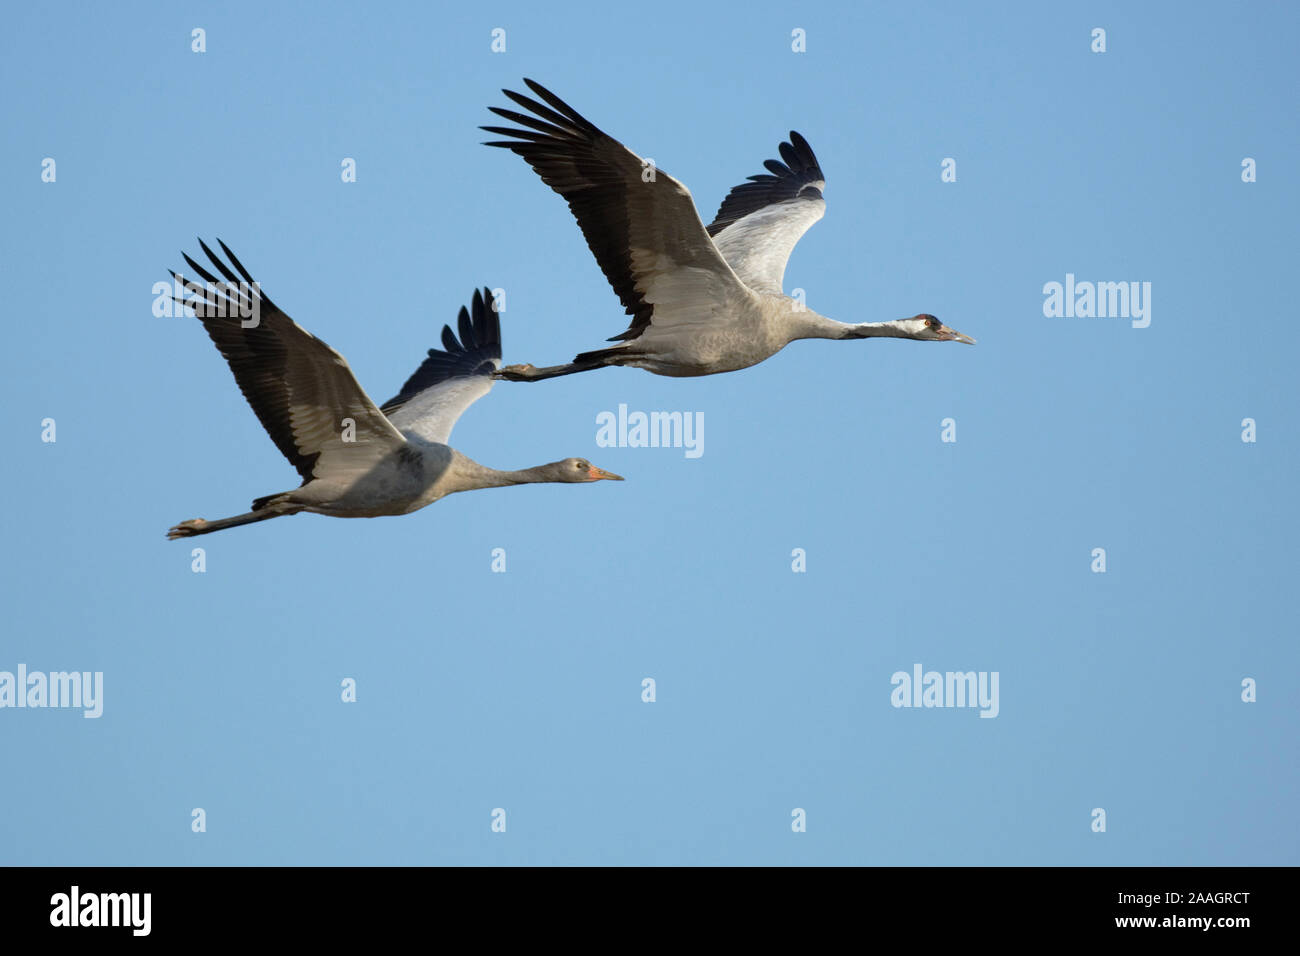 Fliegende Kraniche (Grus grus) Stock Photo